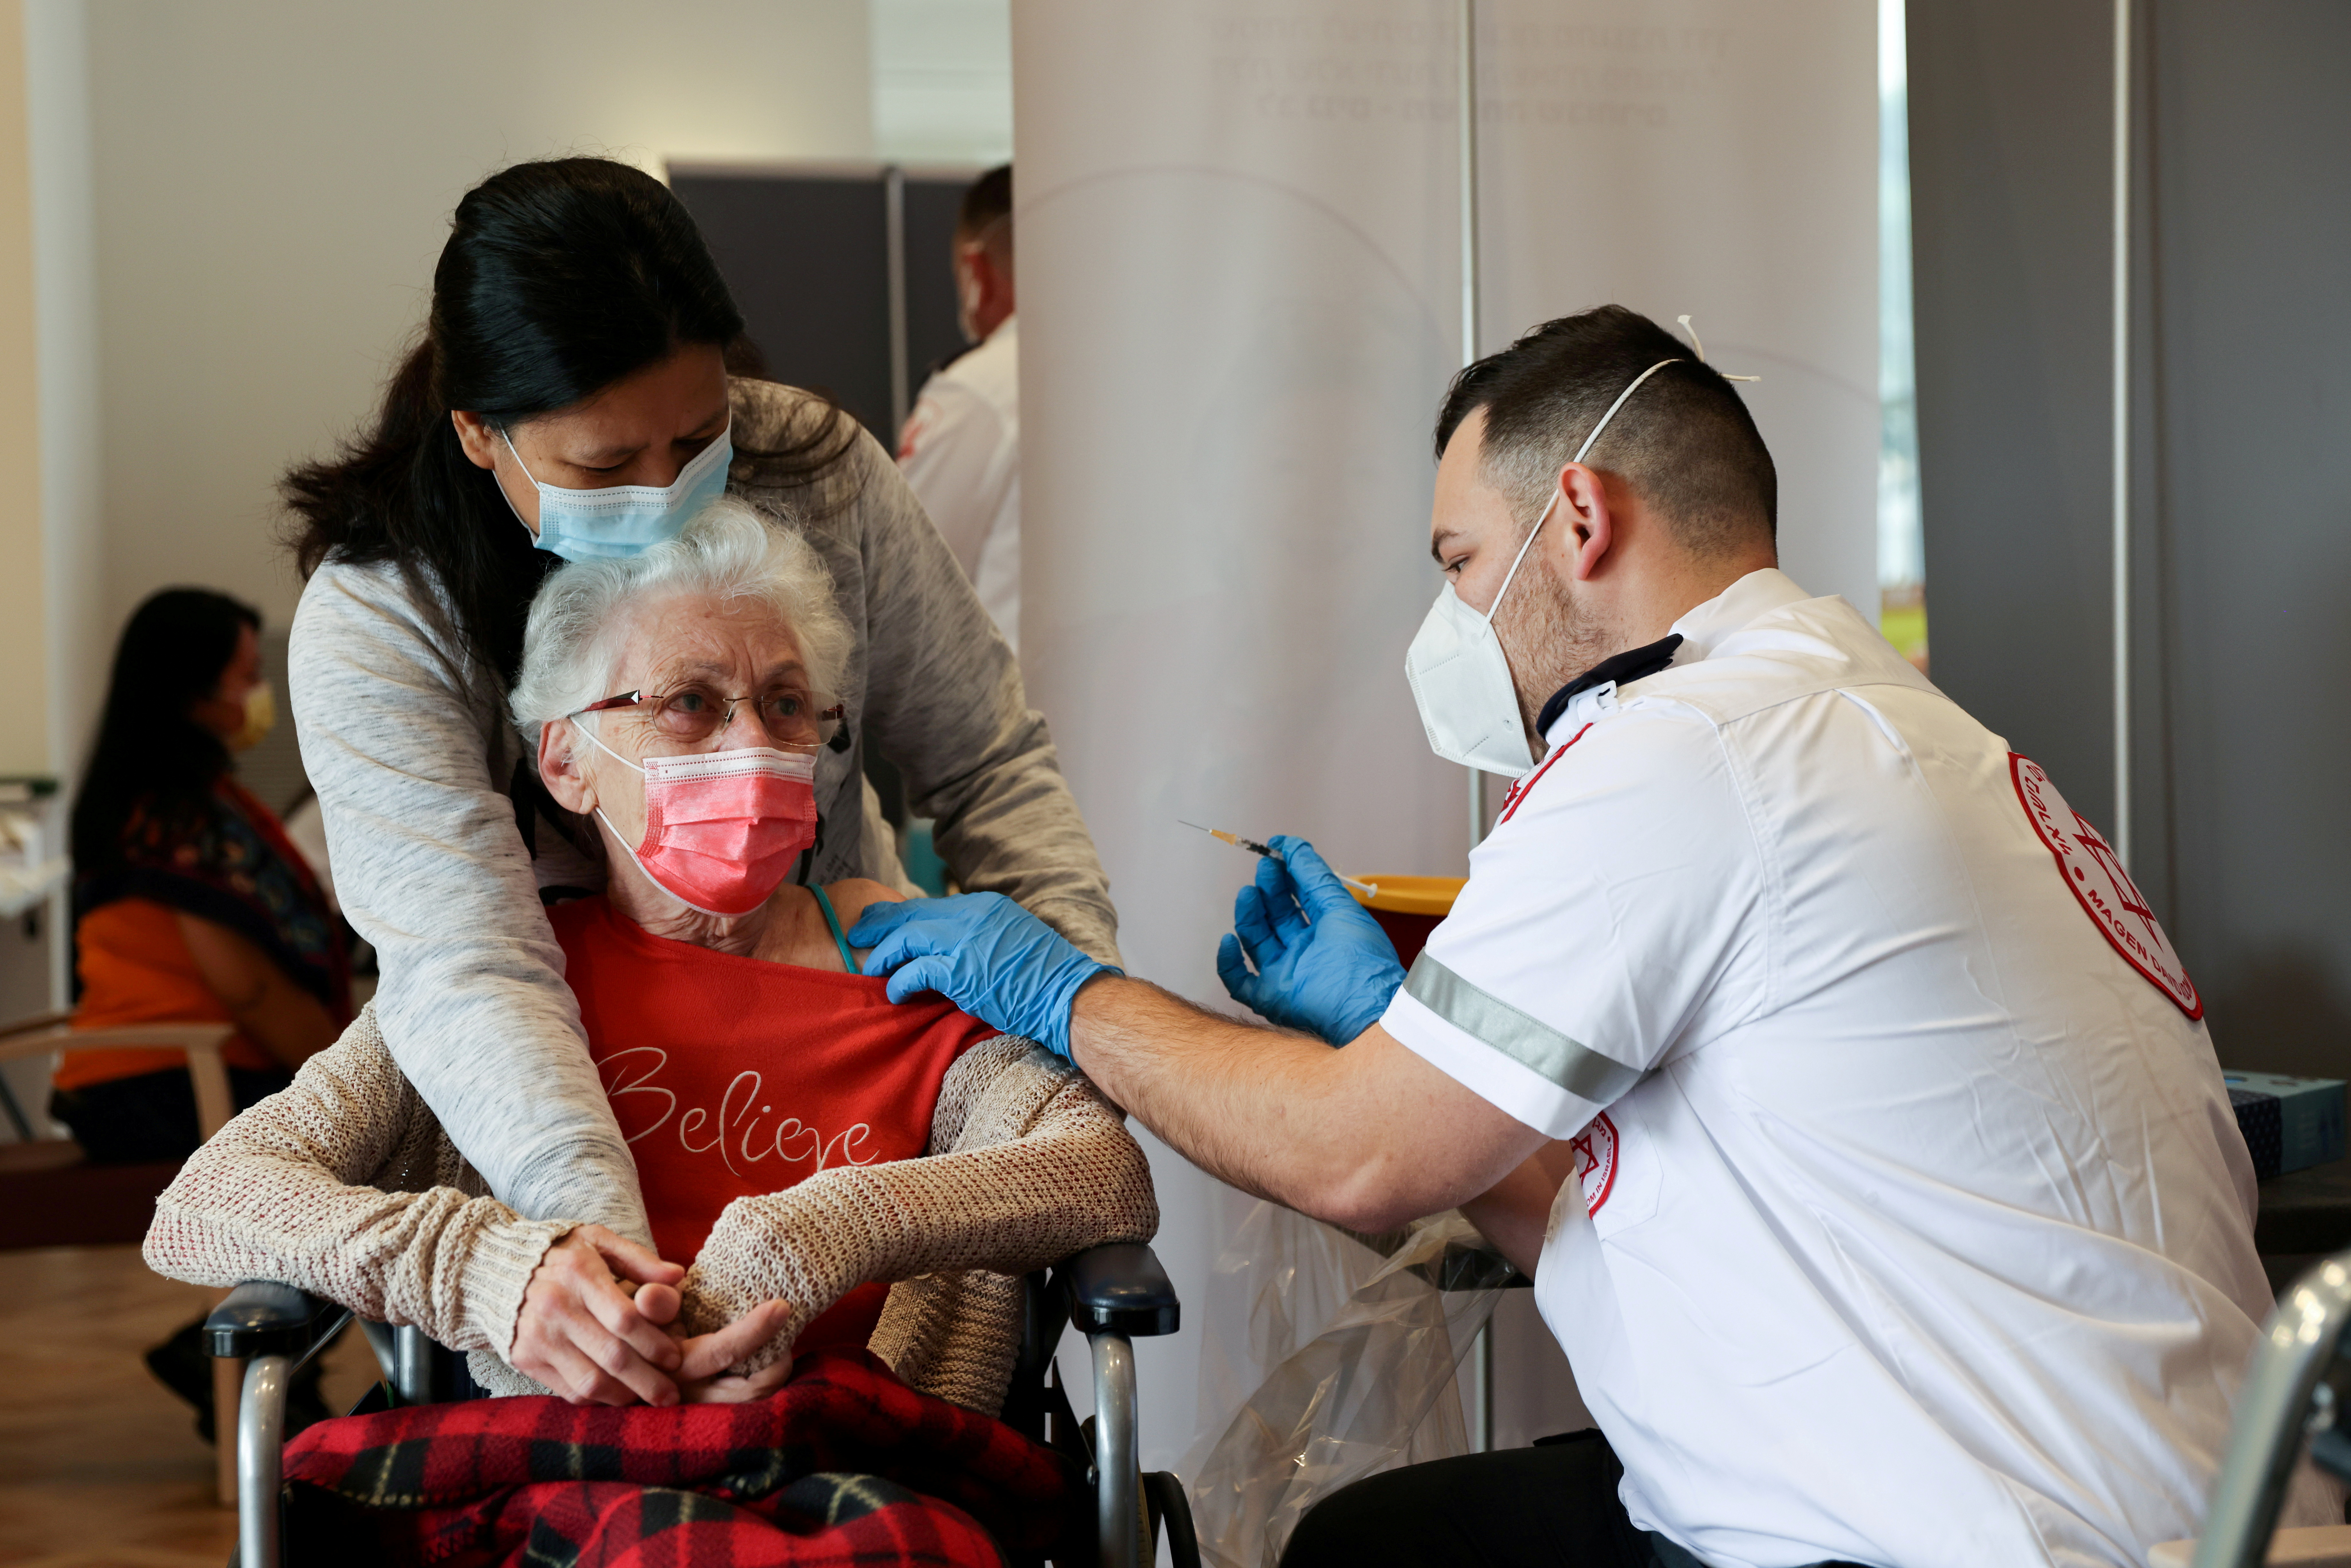 An elderly woman receives a booster shot of her vaccination against the coronavirus disease (COVID-19) at an assisted living facility, in Netanya, Israel January 19, 2021. REUTERS/Ronen Zvulun/File Photo